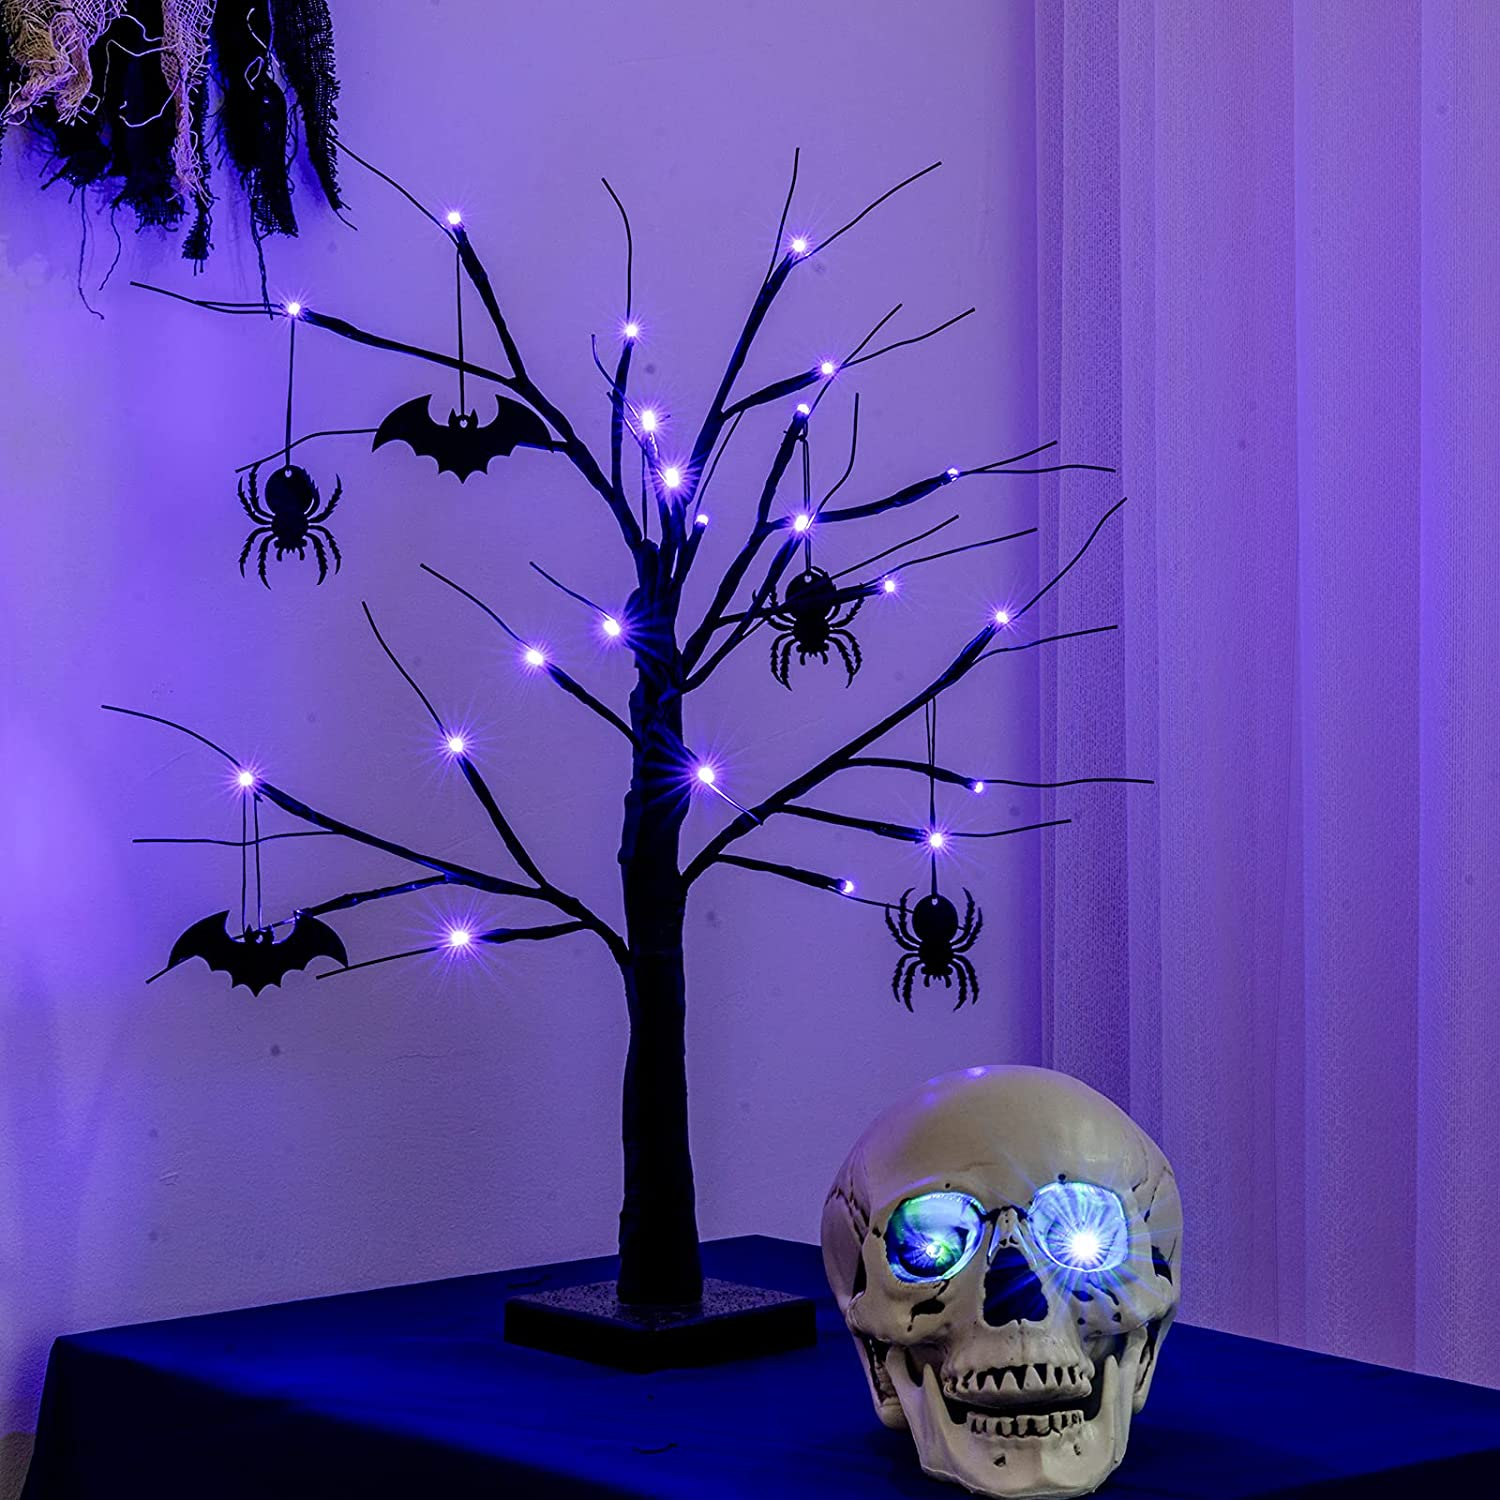 YEAHOME 2FT Black Spooky Halloween Tree Light with 24 LED Purple Lights, 4 Bats and 4 Spiders for Halloween Decorations Battery Operated Indoor Outdoor Decor for Home, Table, Porch